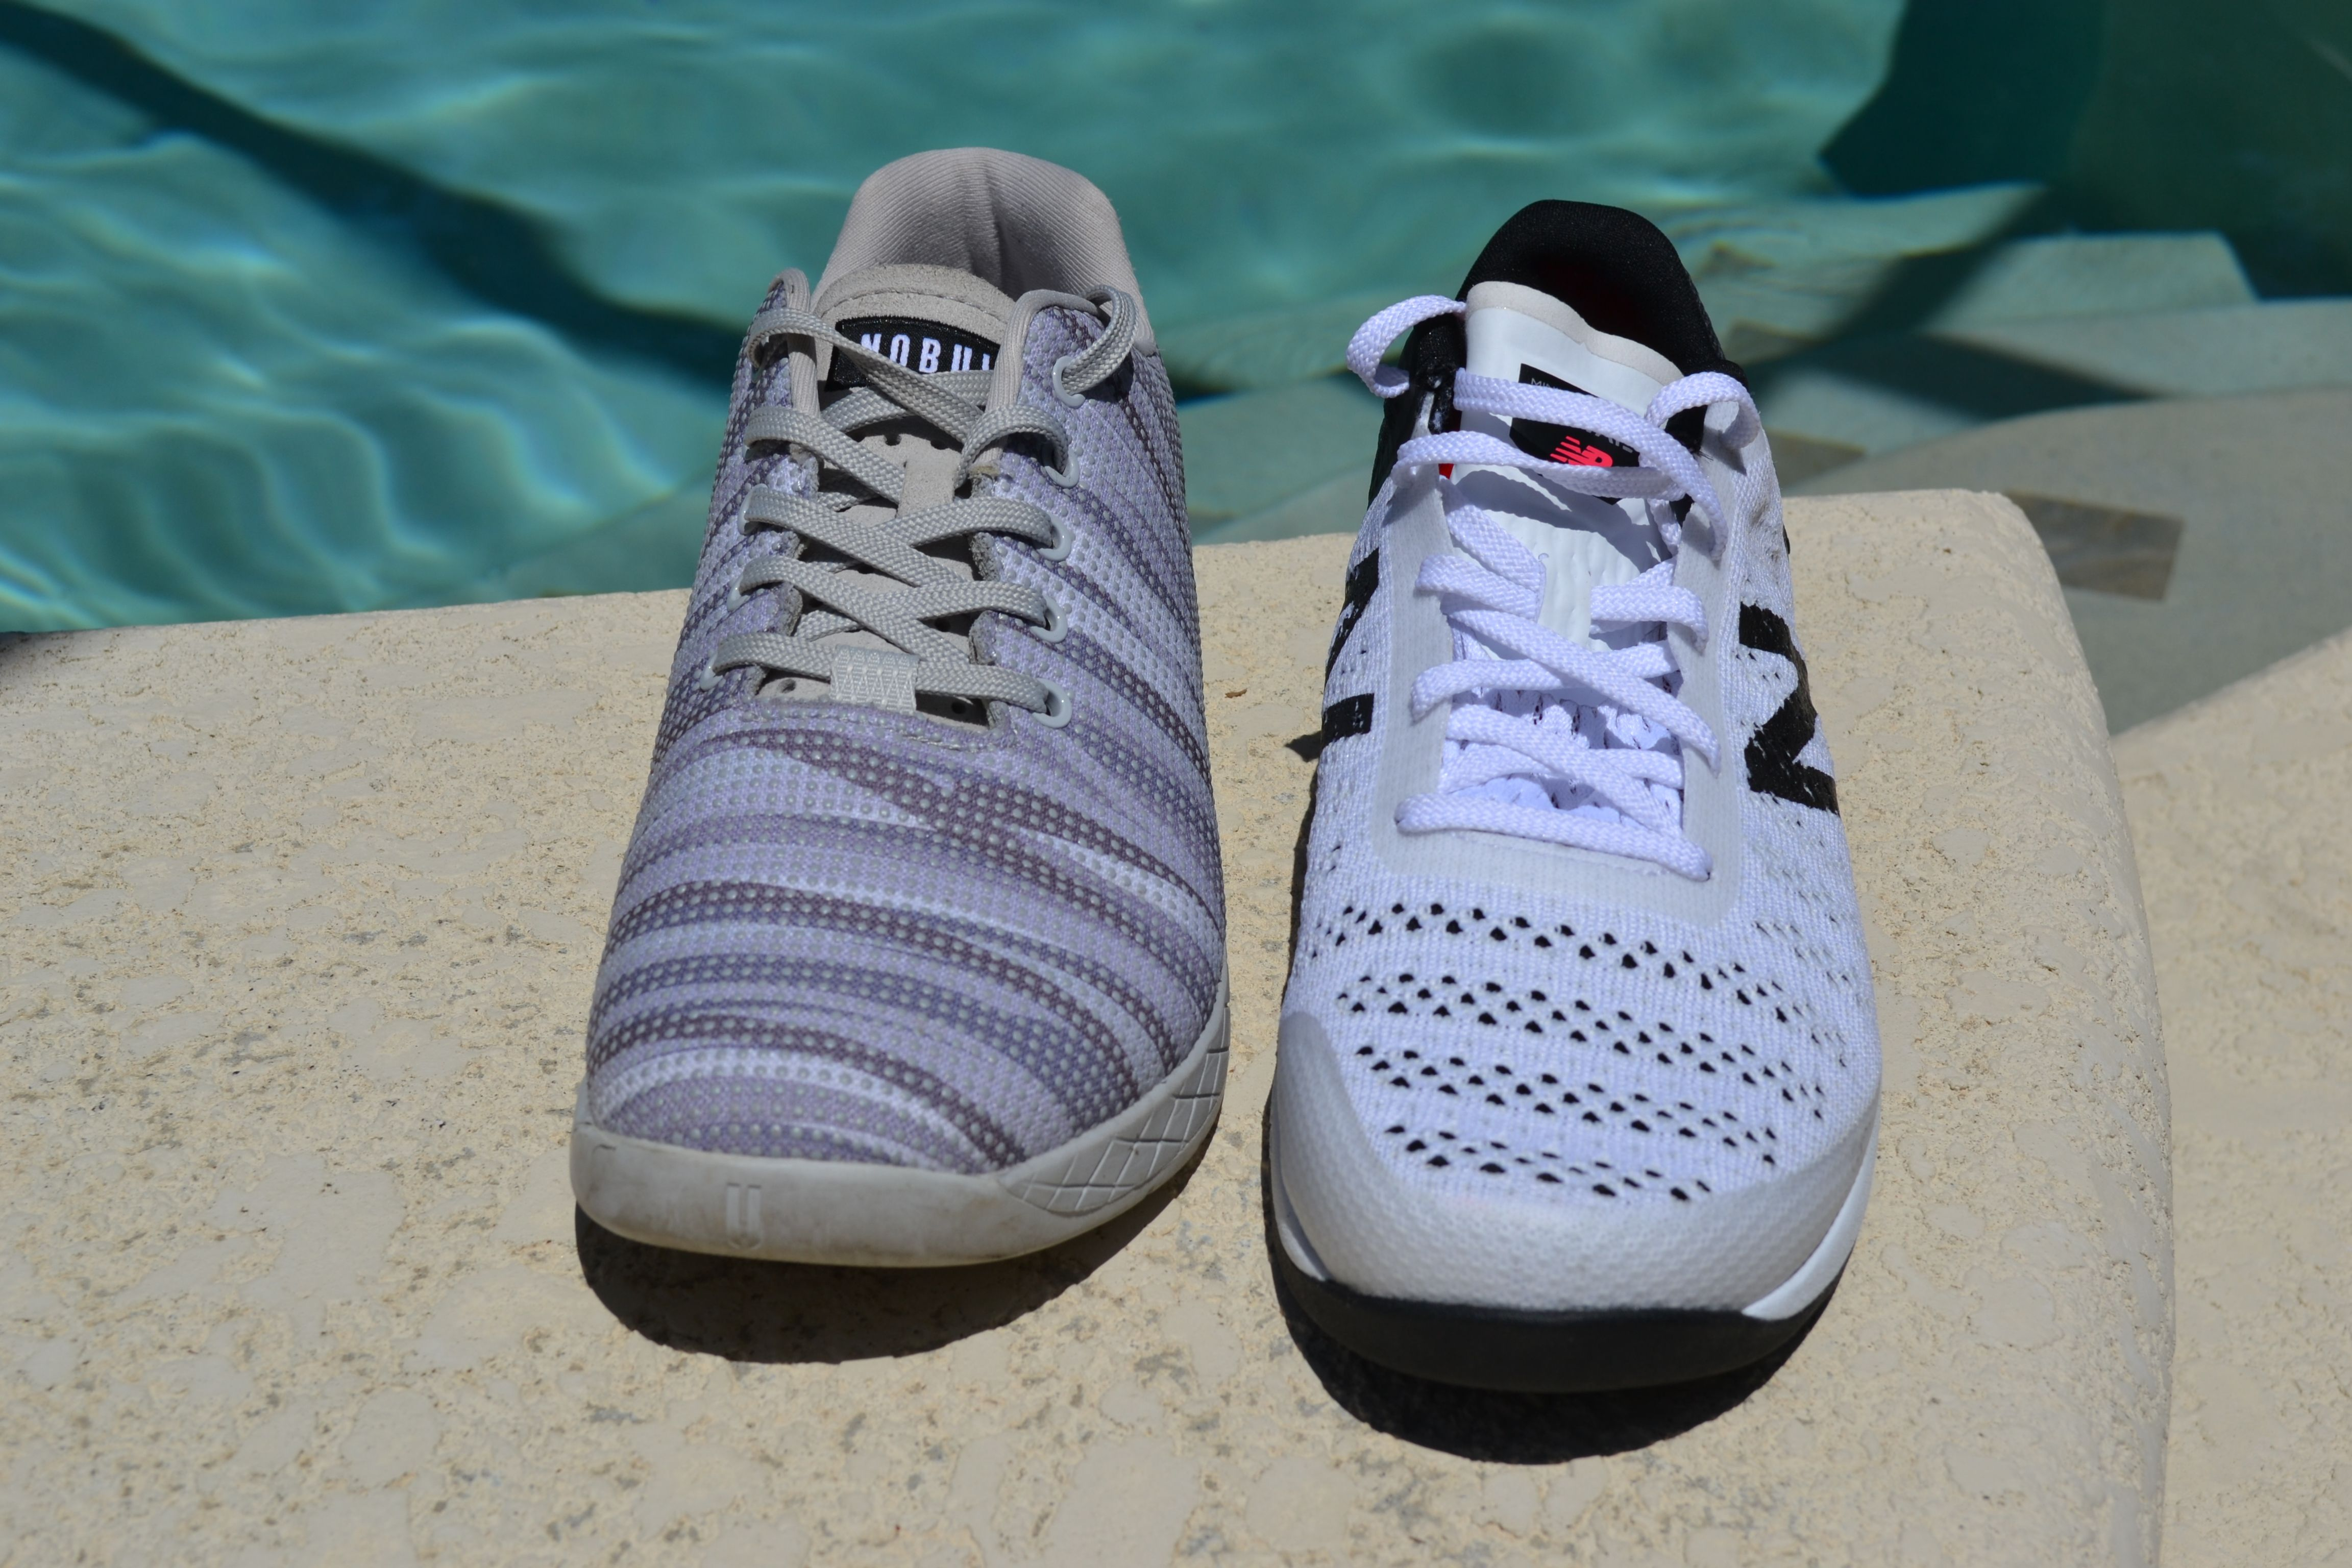 Pin by Fit At Midlife on CrossFit Shoes | Crossfit shoes